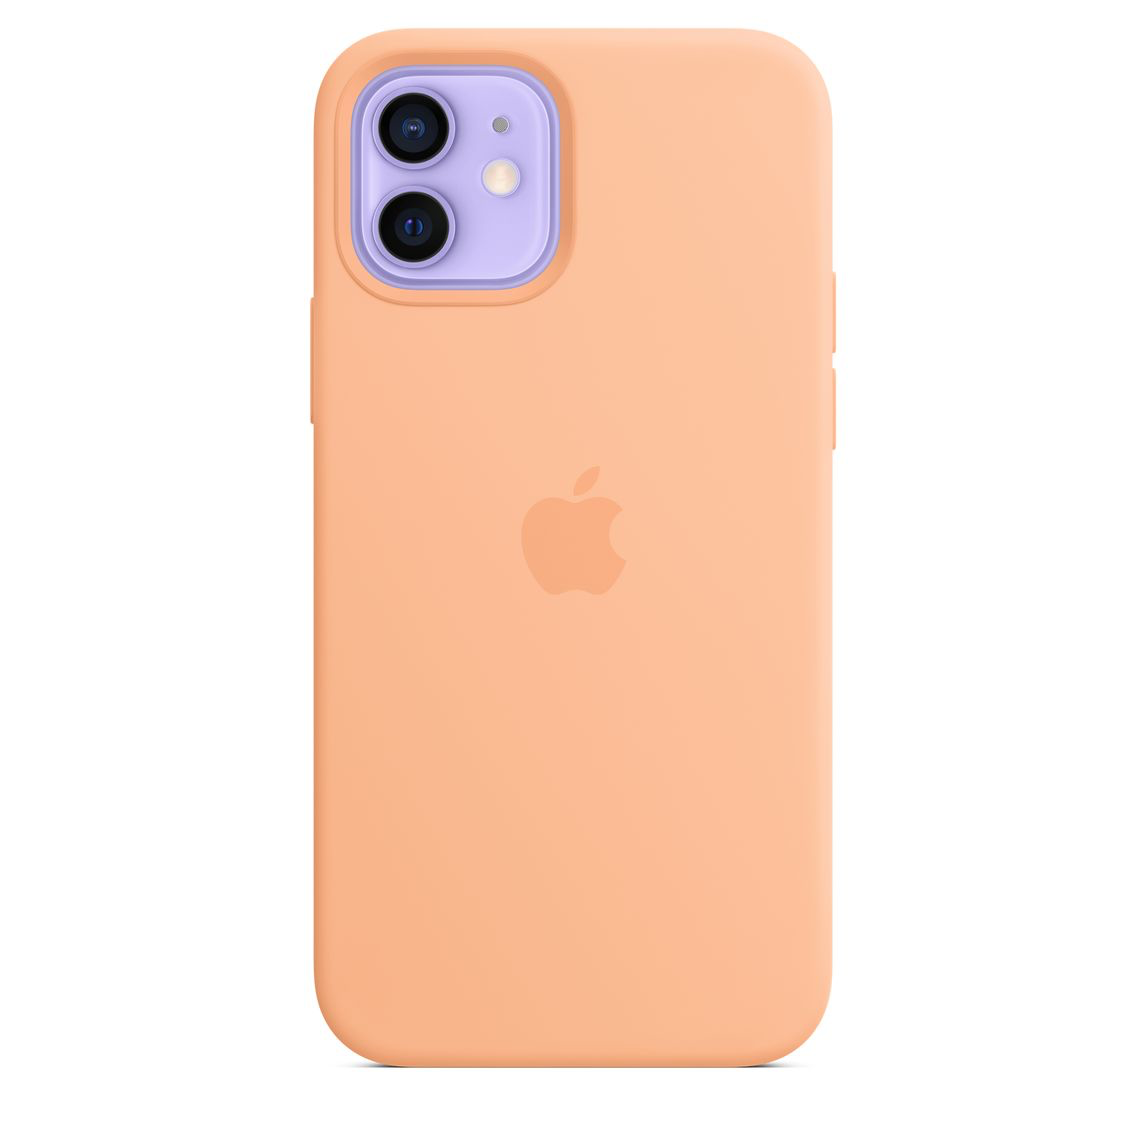 Apple iPhone 12 Pro Max Silicone Case with MagSafe Cantaloupe